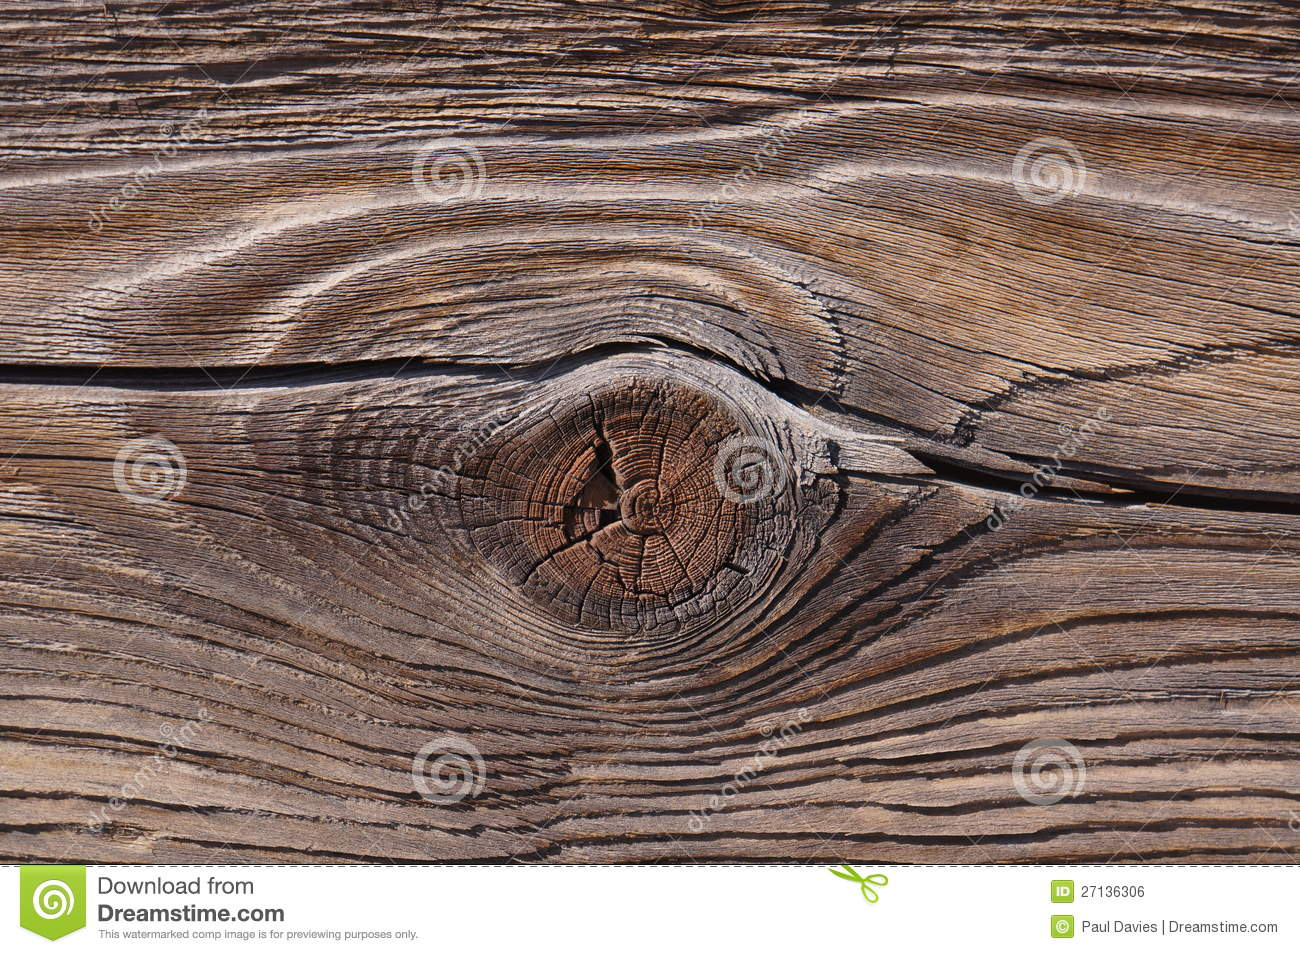 Wood Knot and Grain